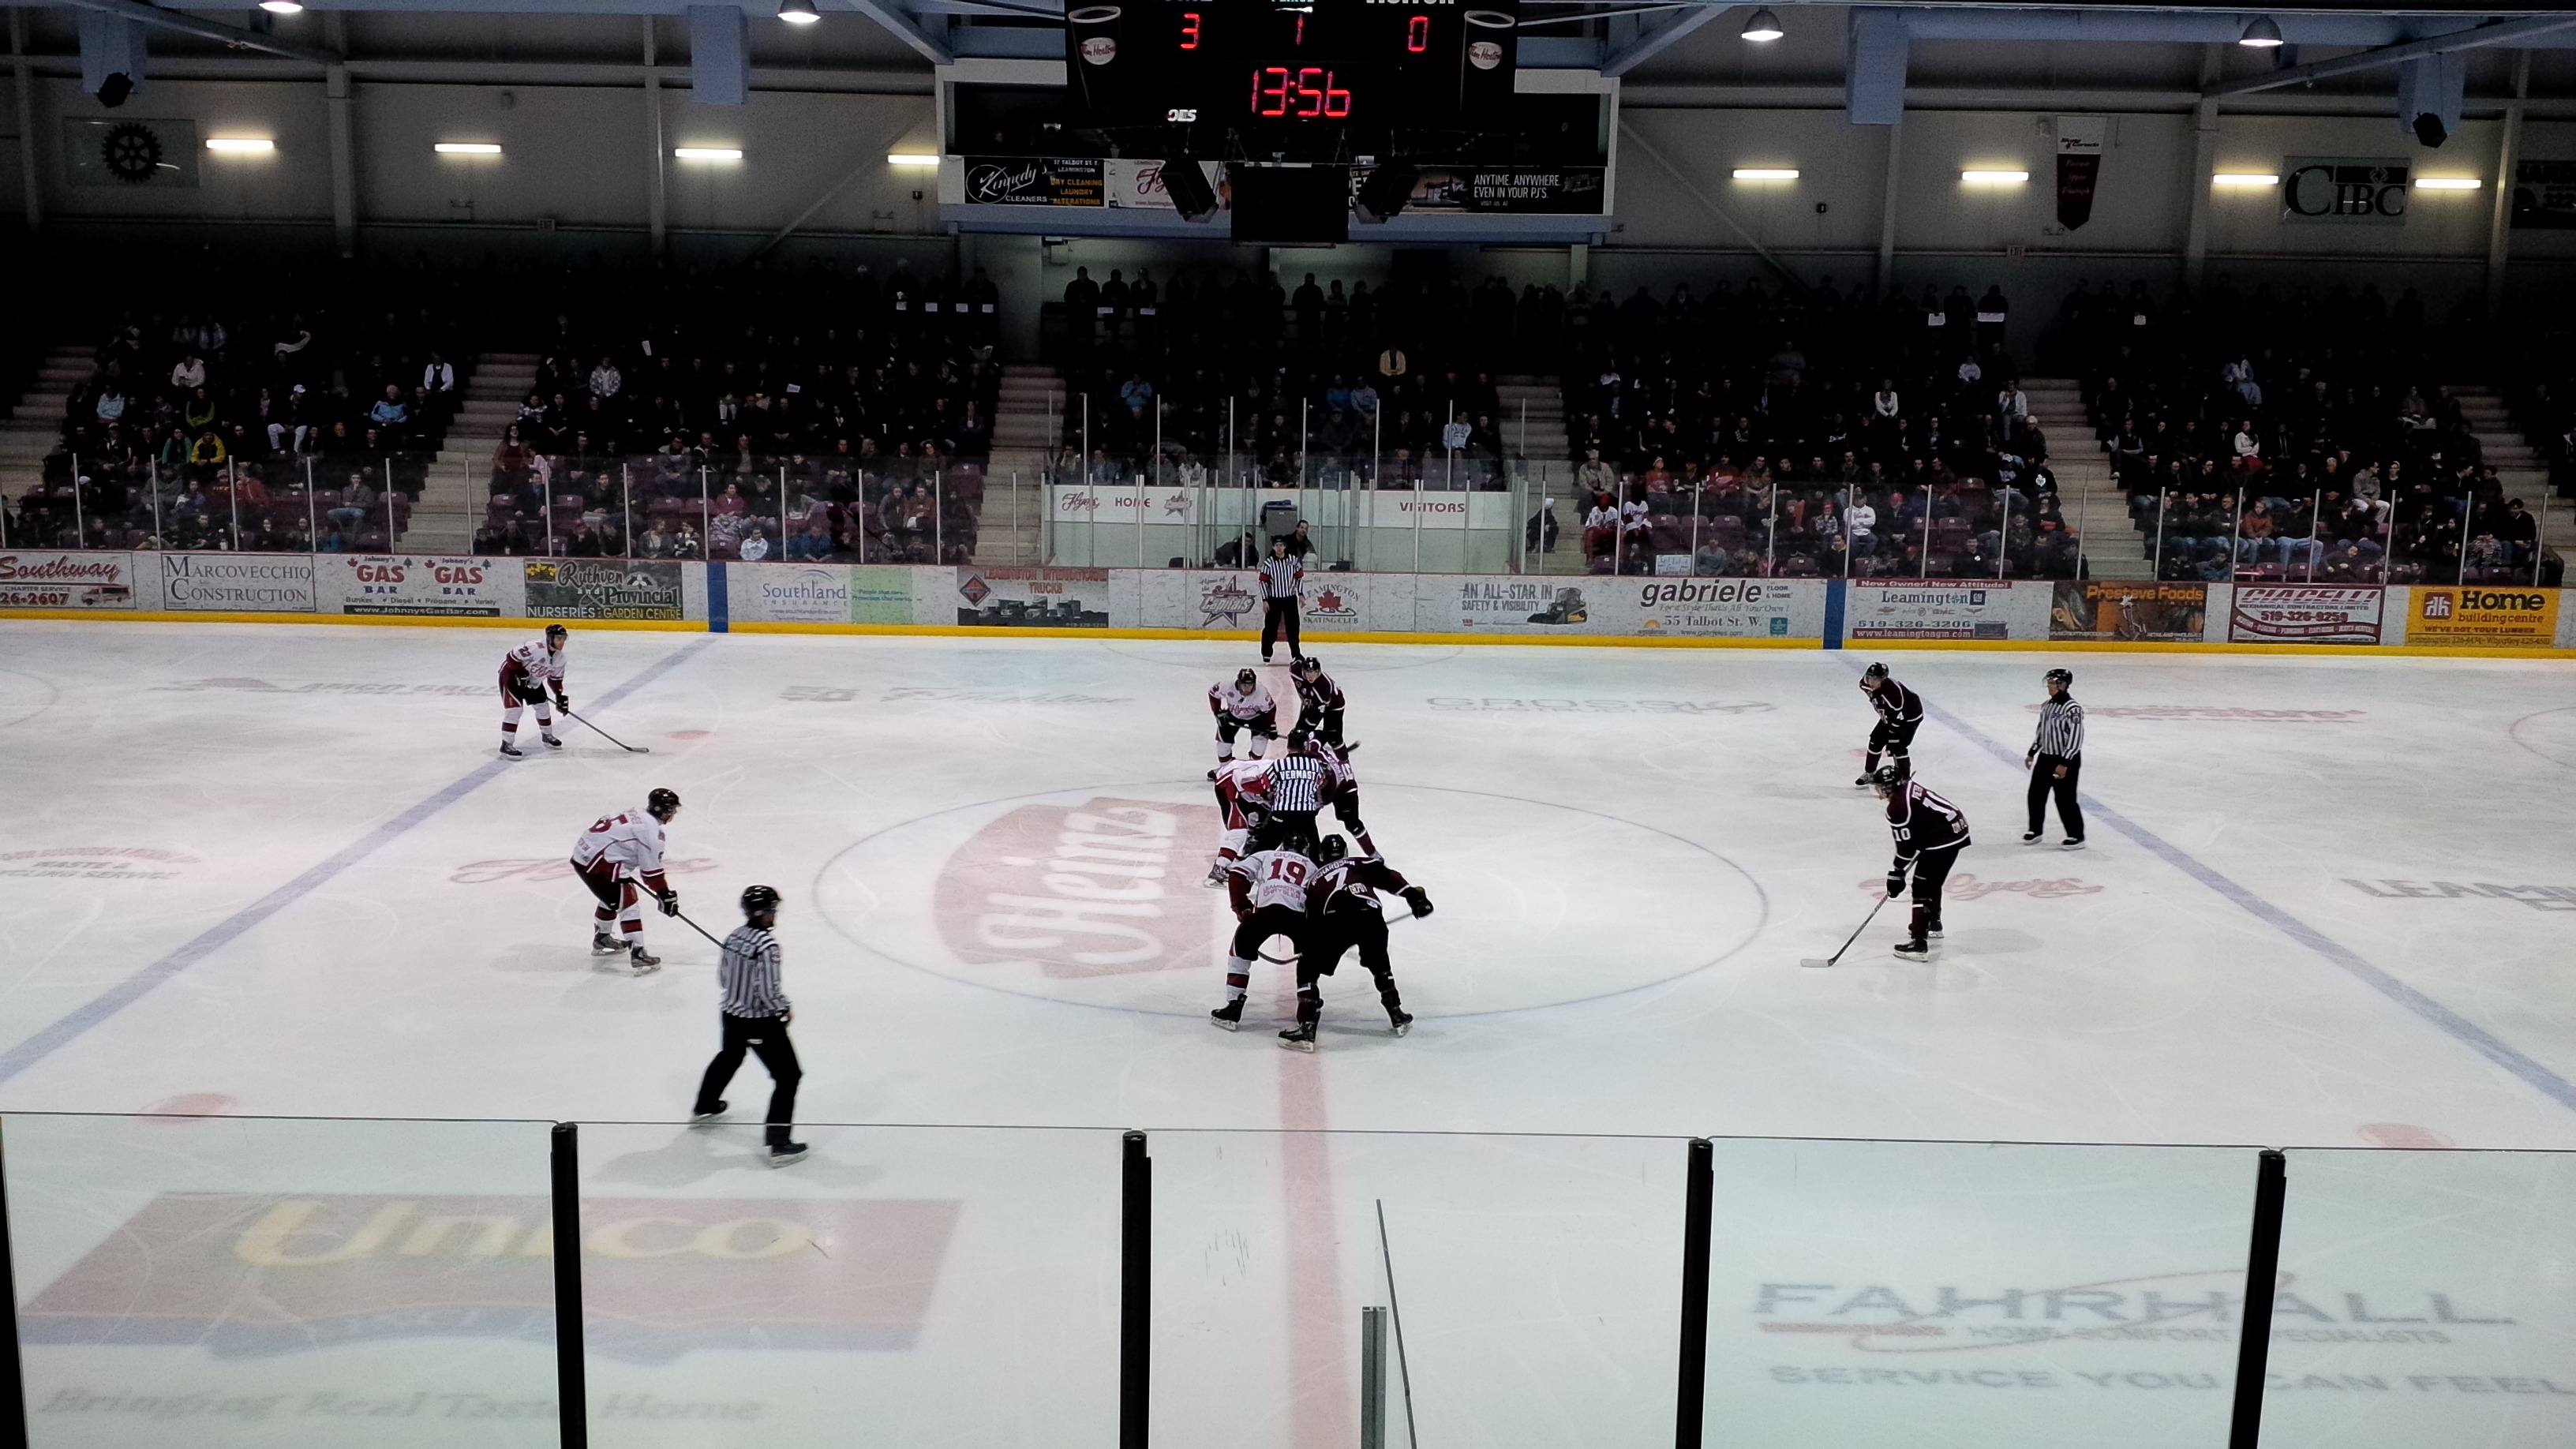 The Leamington Flyers host the Chatham Maroons in Game 3 of their GOJHL West Final on March 30, 2014. (Photo by Ricardo Veneza)